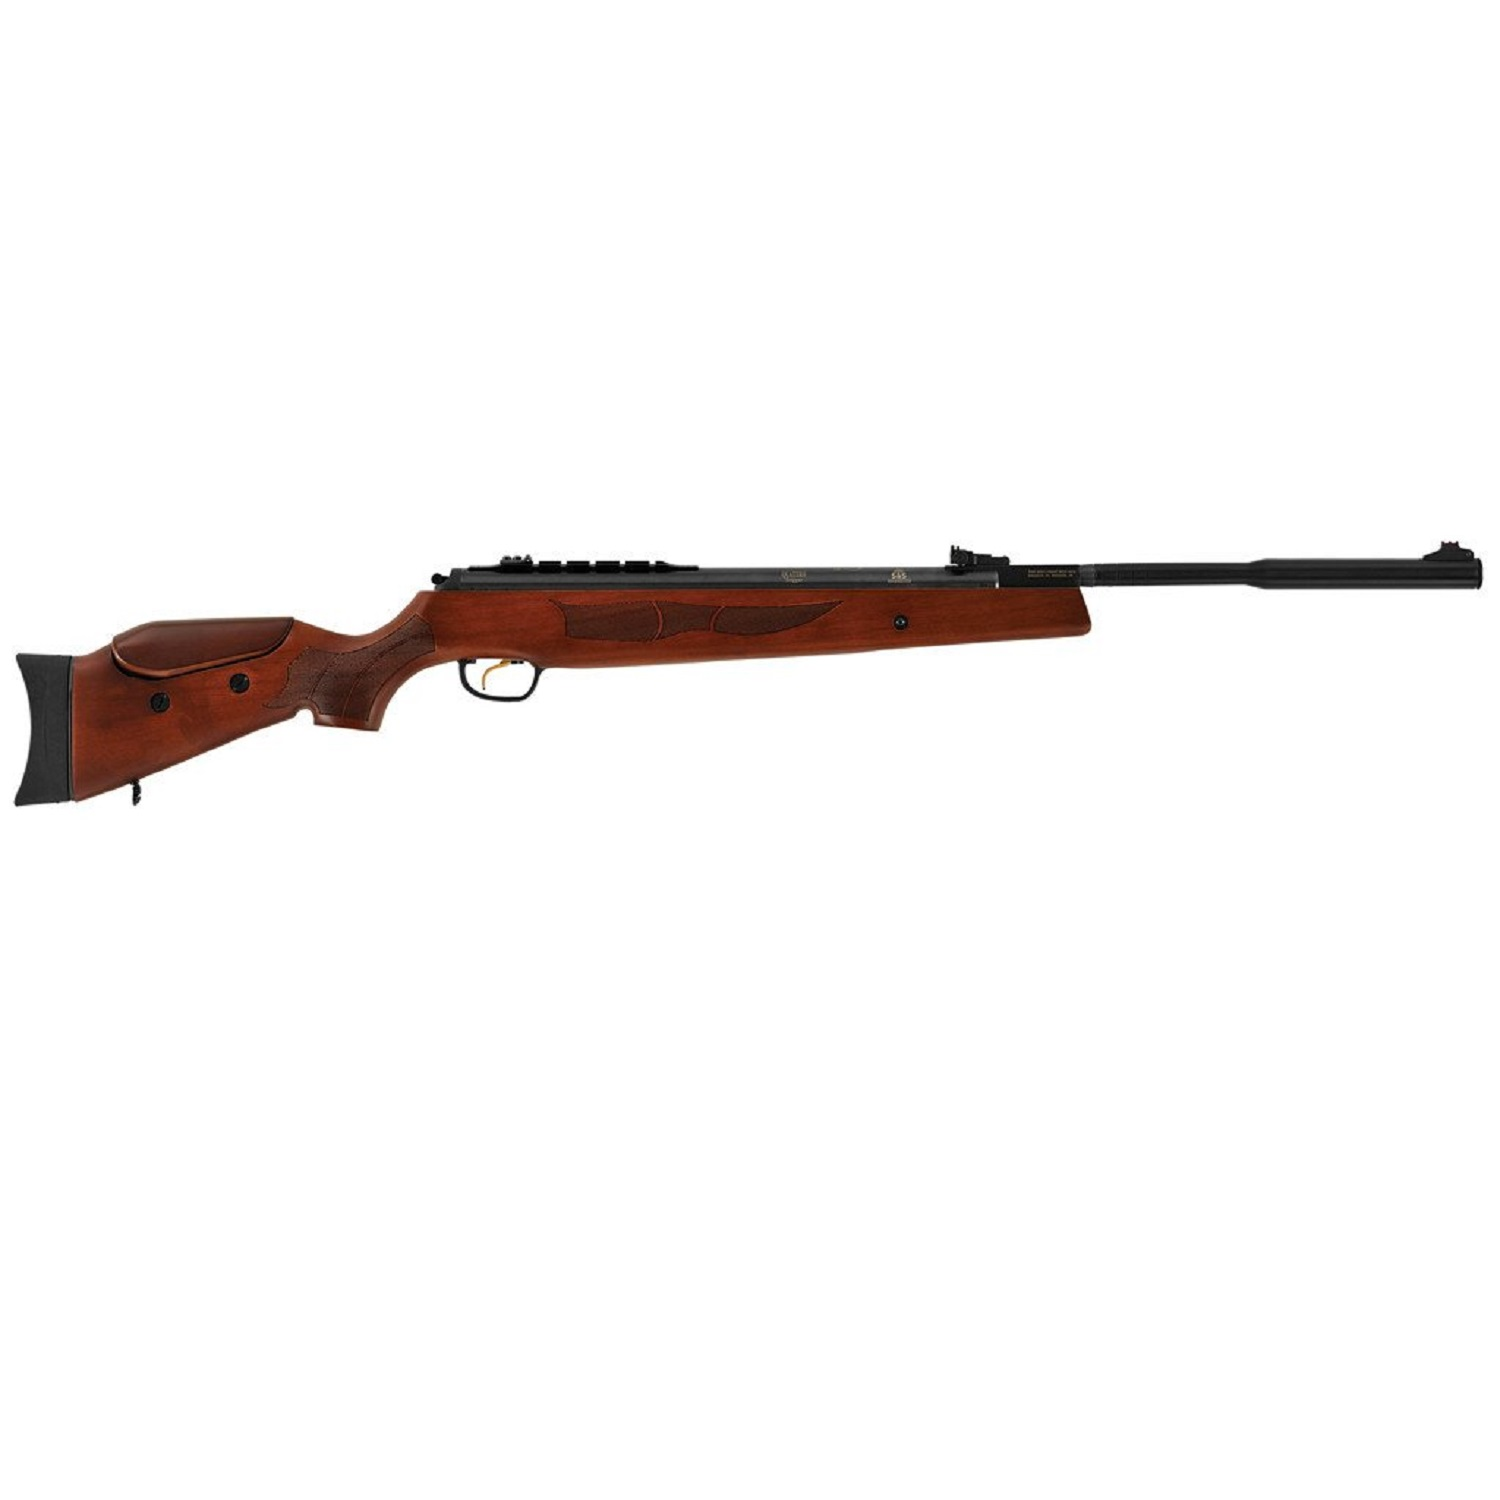 Hatsan Model 135 Vortex QE .25 Caliber Air Rifle